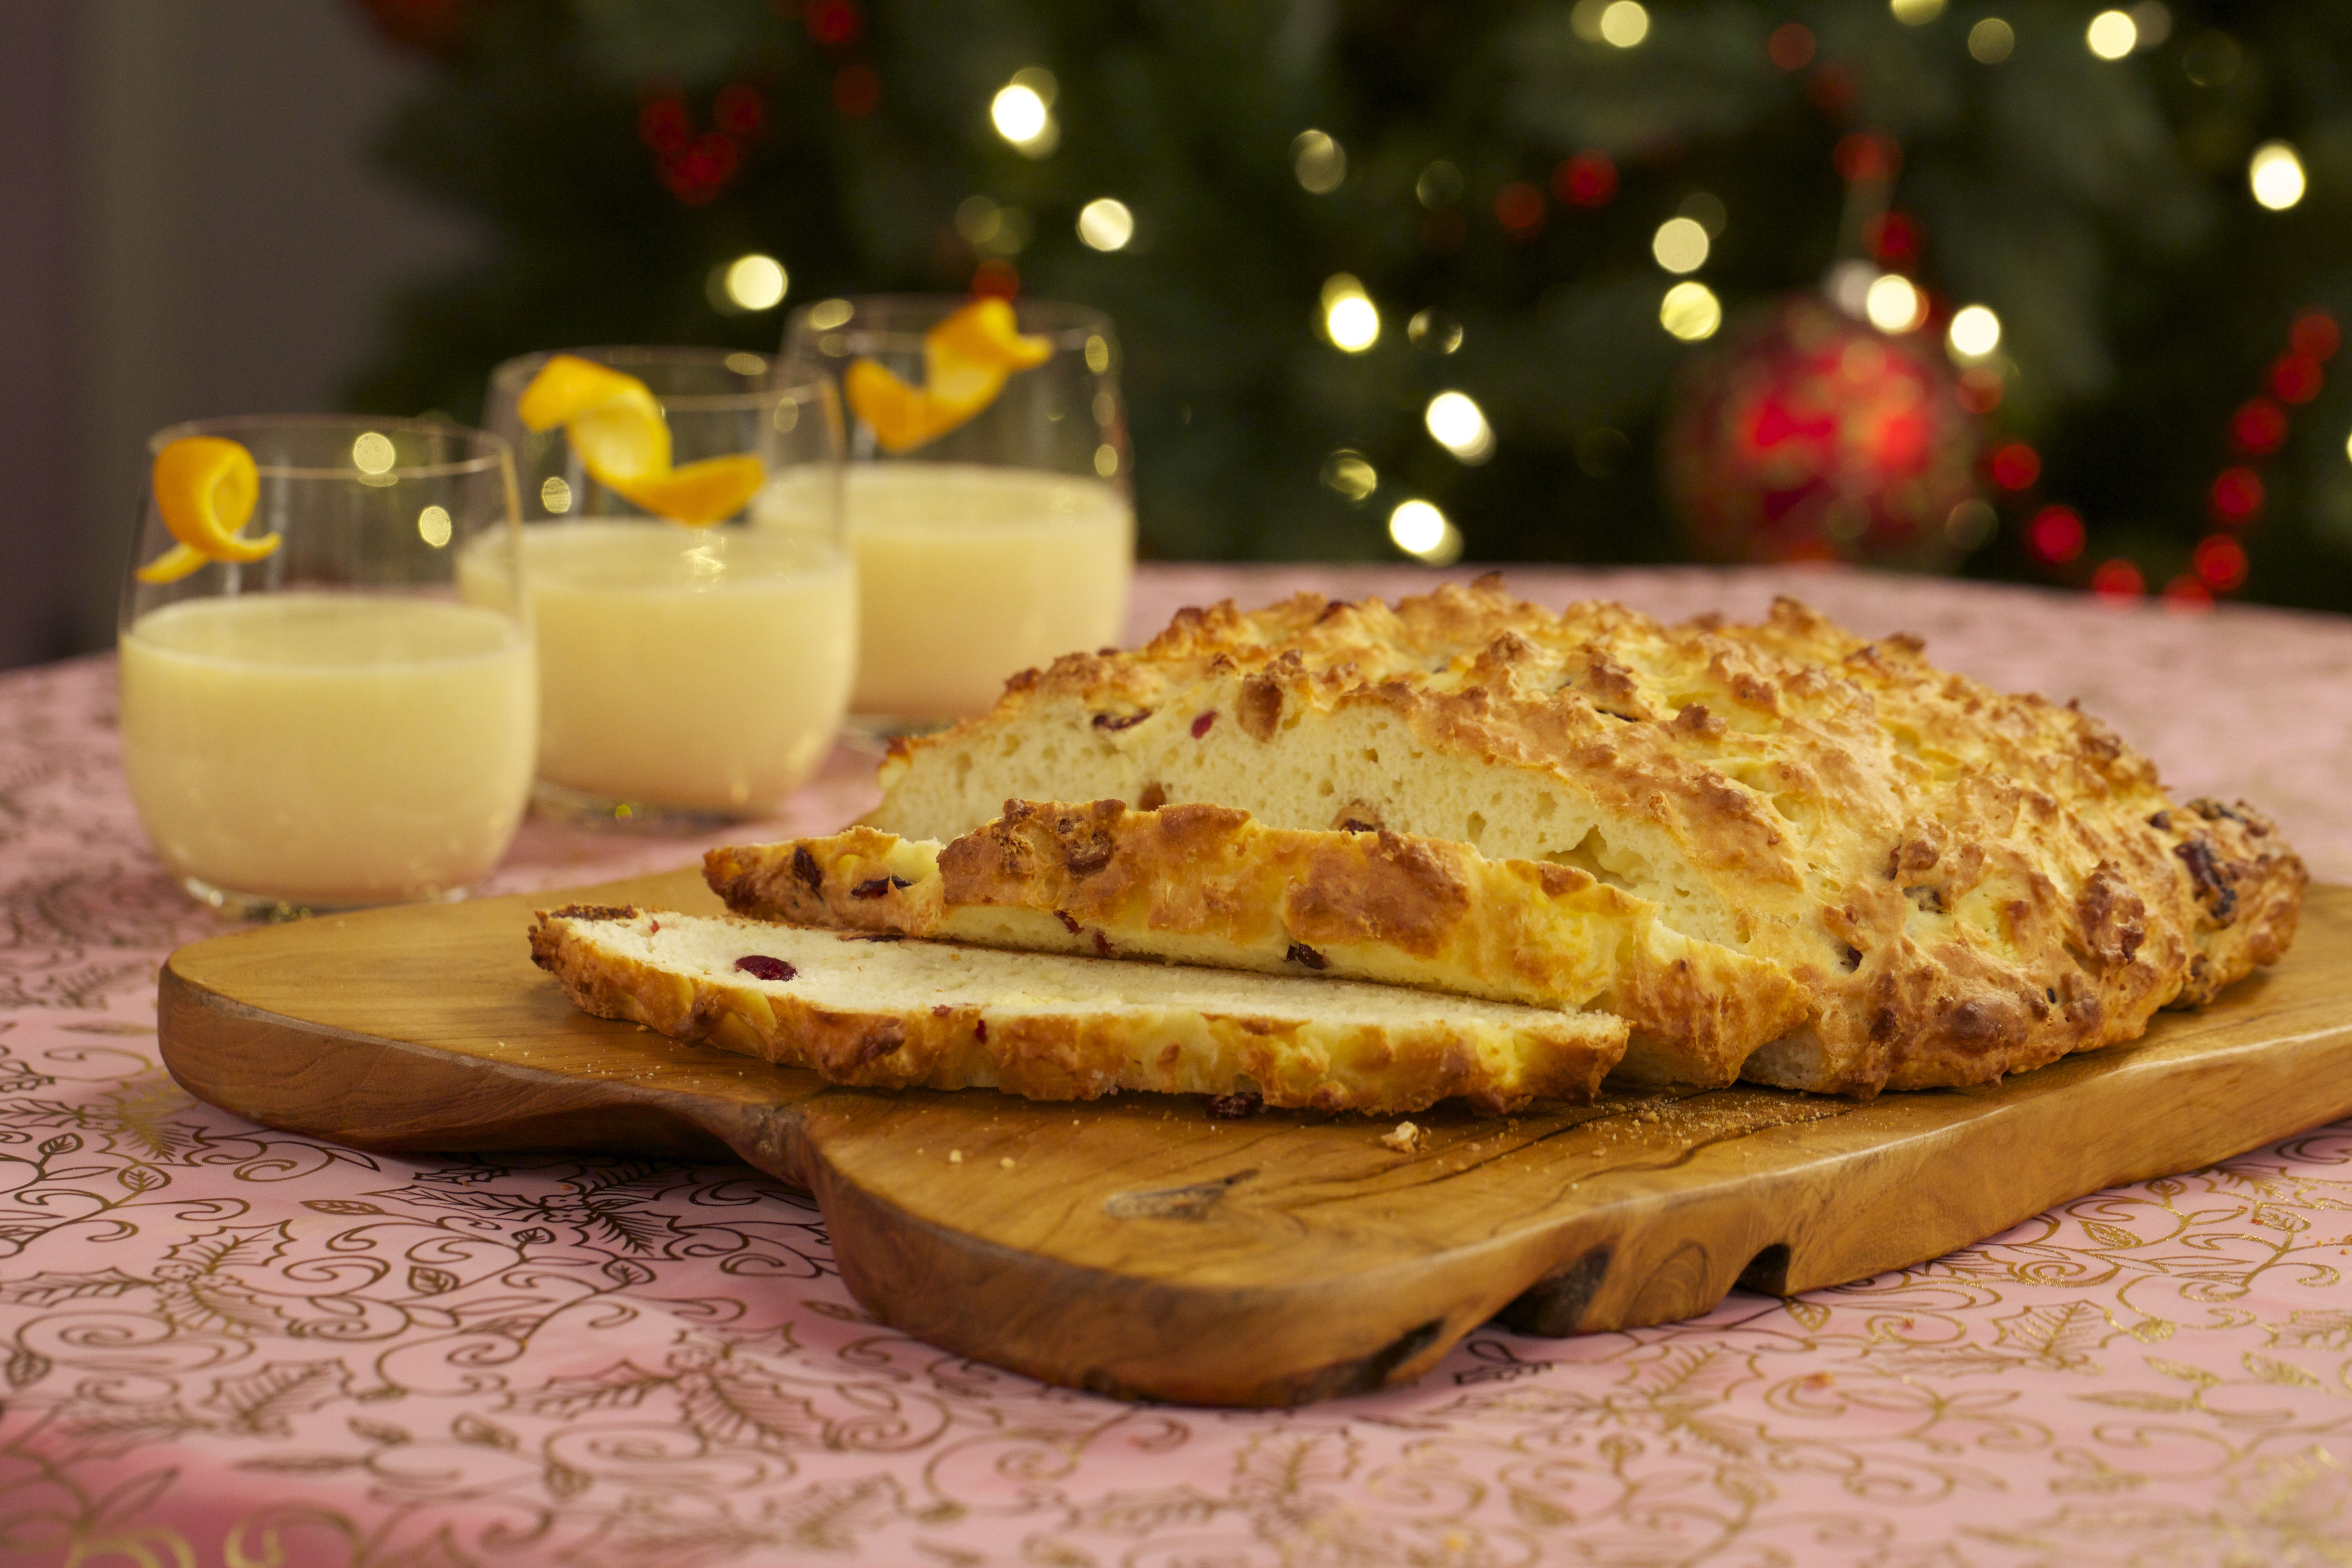 Lotte duncans christmas morning bread christmas favs pinterest how to make the perfect christmas morning bread by lotte duncan on food network uk forumfinder Choice Image